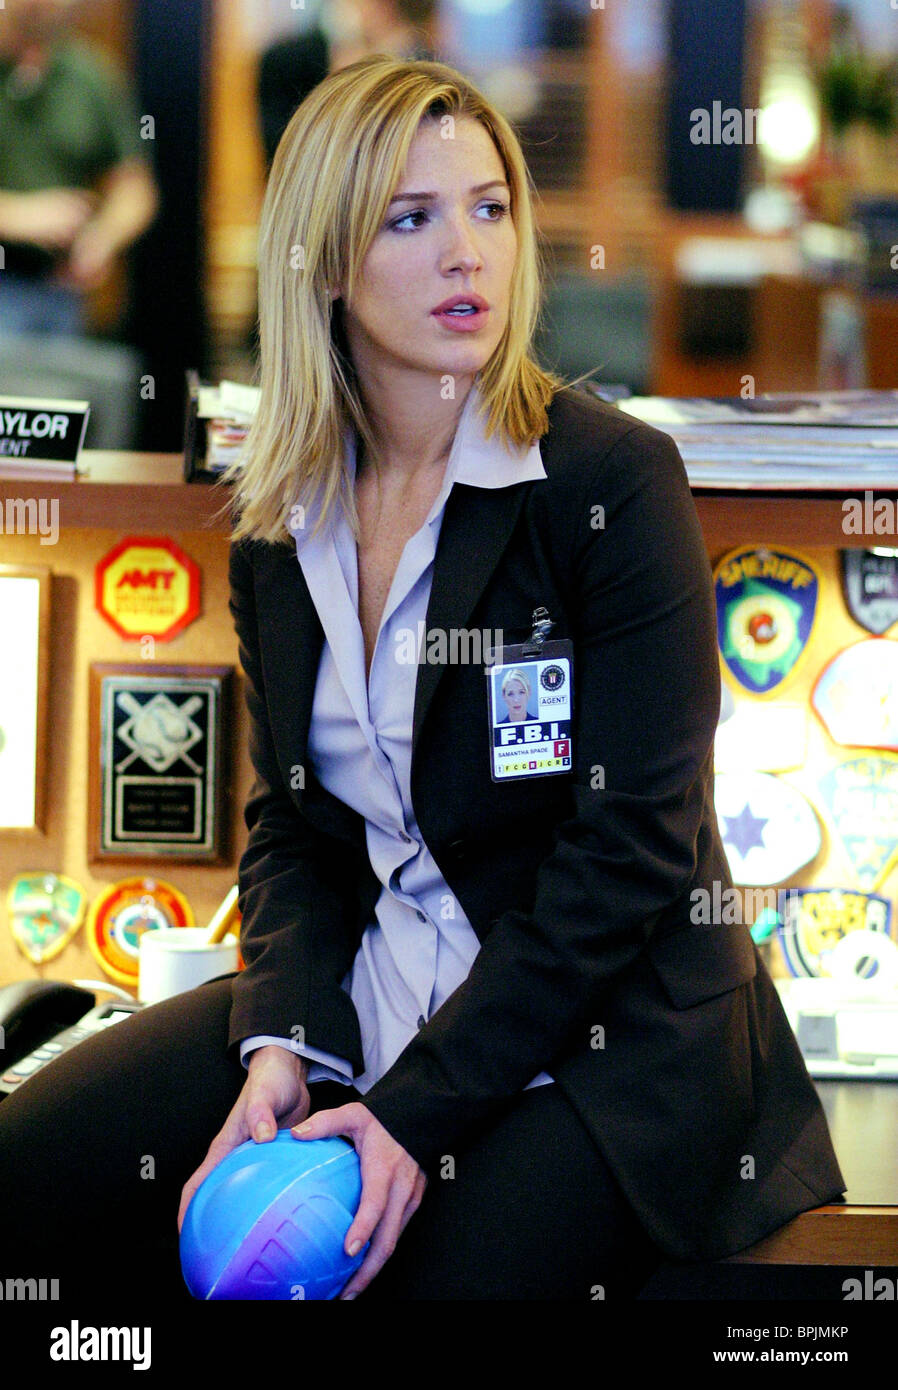 Poppy Montgomery Without A Trace 2002 Stock Photo 31144170 Alamy